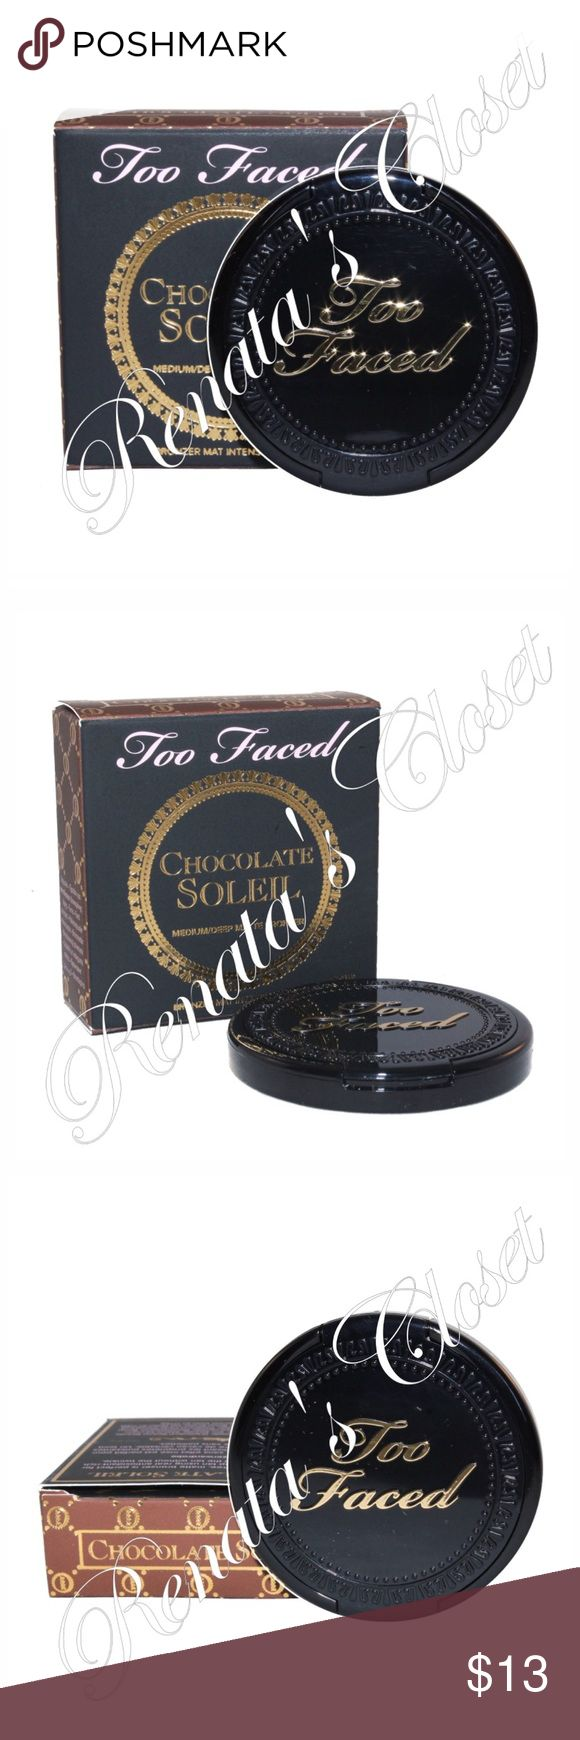 Too Faced Chocolate Soleil Matte Bronzer The ultimate shimmer-free, matte bronze perfect for creating an all-over deep tan using real antioxidant-rich cocoa powder. It's all the tan w/o the twinkle.  * UPC # 651986973095 * shade - MEDIUM TO DEEP * net wt - 2.5 g/0.08 oz (travel size) * top-rated item at sephora.com * brand new/unopened for protection w/ original packaging * stock photo provided for further reference * watermarked photos are of the actual item * smoke-free home * videotaped…